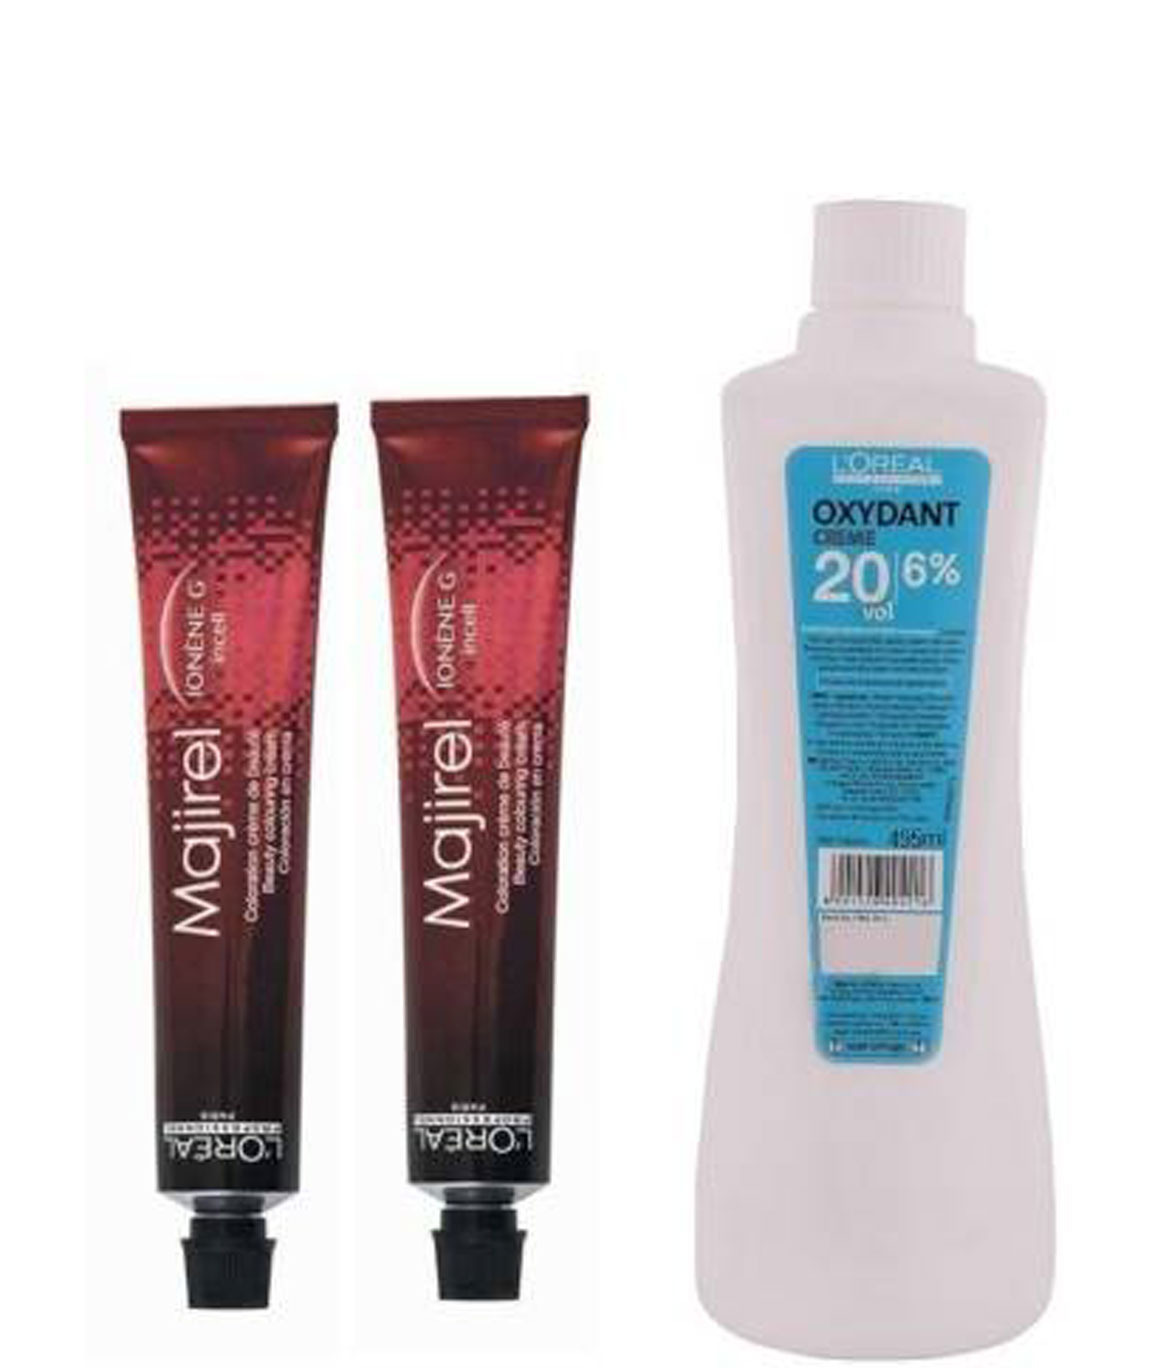 L`Oreal Majirel No. 3 Dark Brown With Oxydant Creme 20 Vol 6% Developer (Set Of 3) With Mixing Bowl & Brush